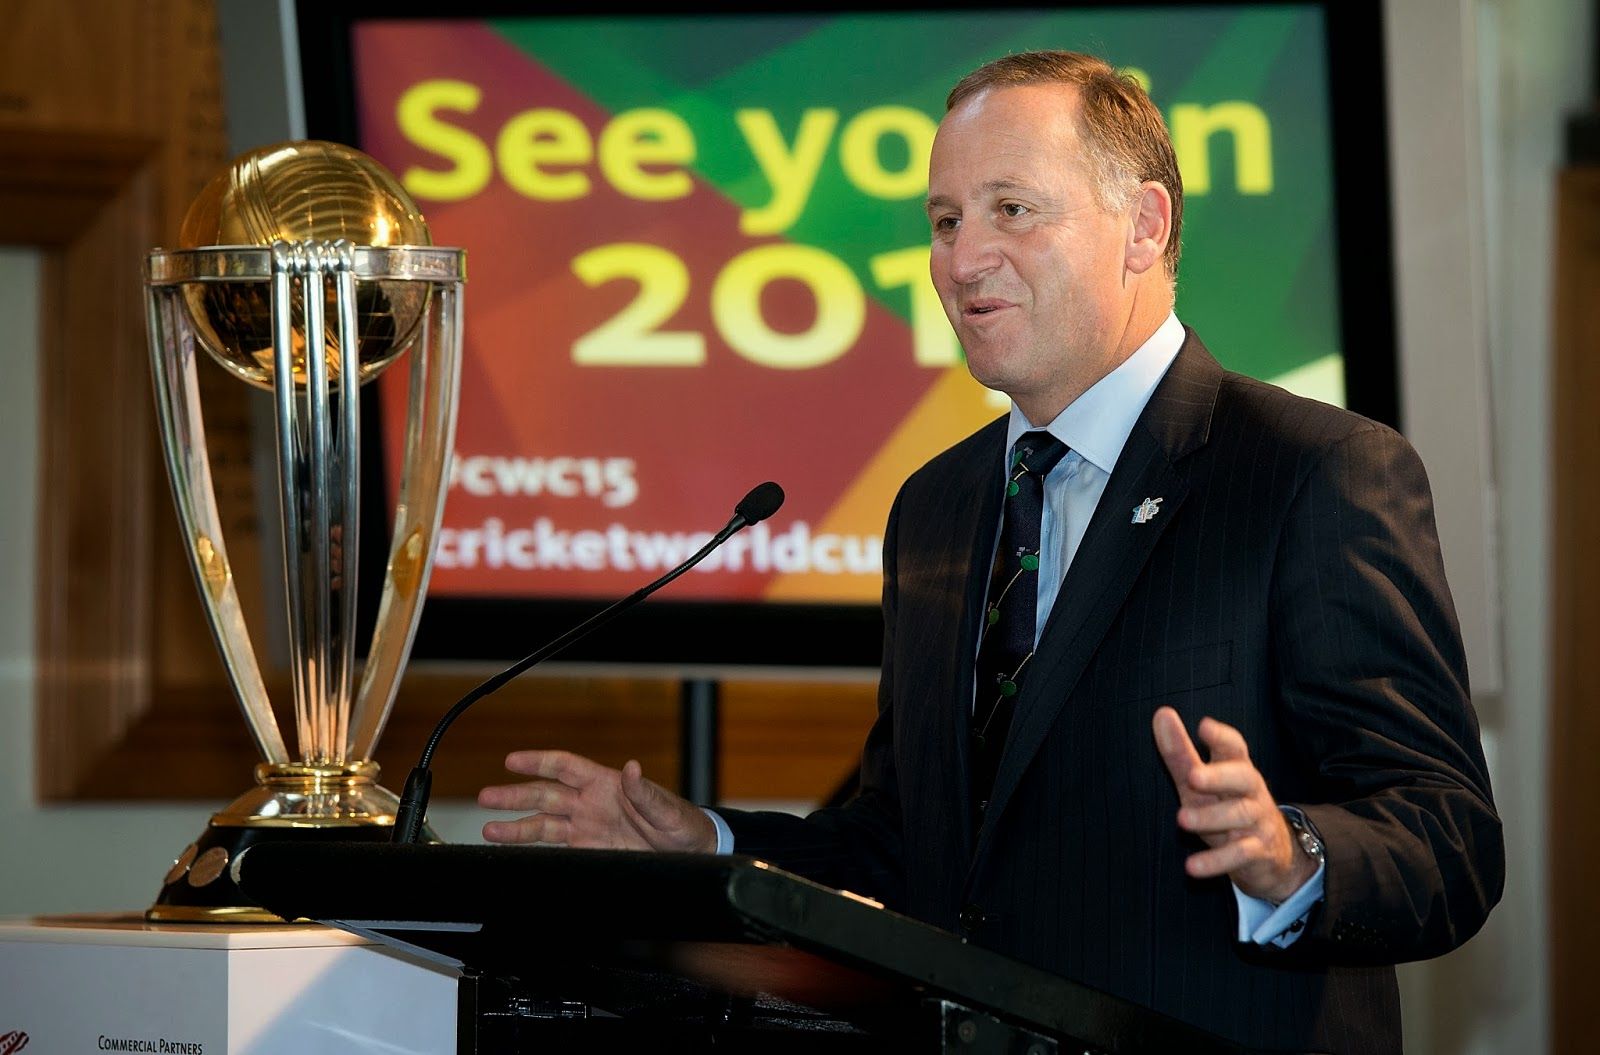 ICC, Cricket, Cricketer, Sports, 2015 Cricket World Cup, World Cup, Australia, New Zealand, Sydney, Prime Minister, Politician, Tony Abbott, John Key, Ralph Waters, Chairman ICC Cricket World Cup, Wellington,